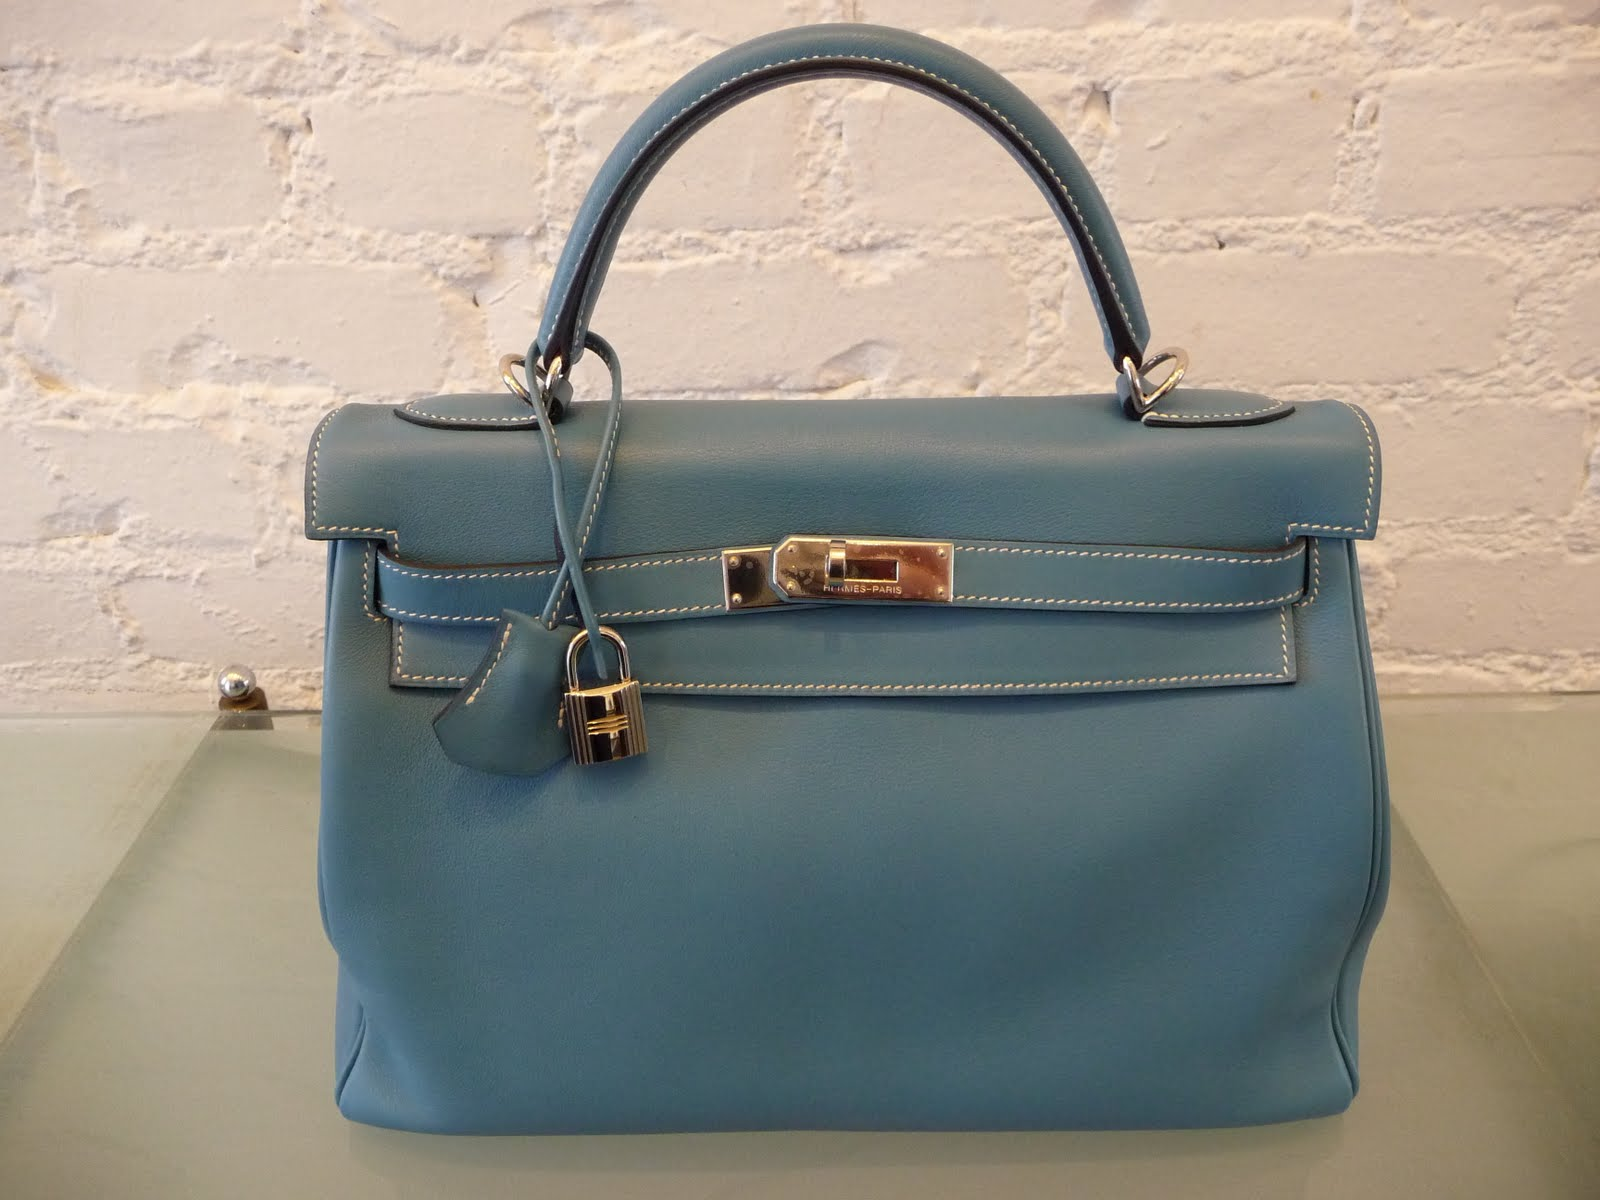 hermes garden party ecru (off white)/atoll blue